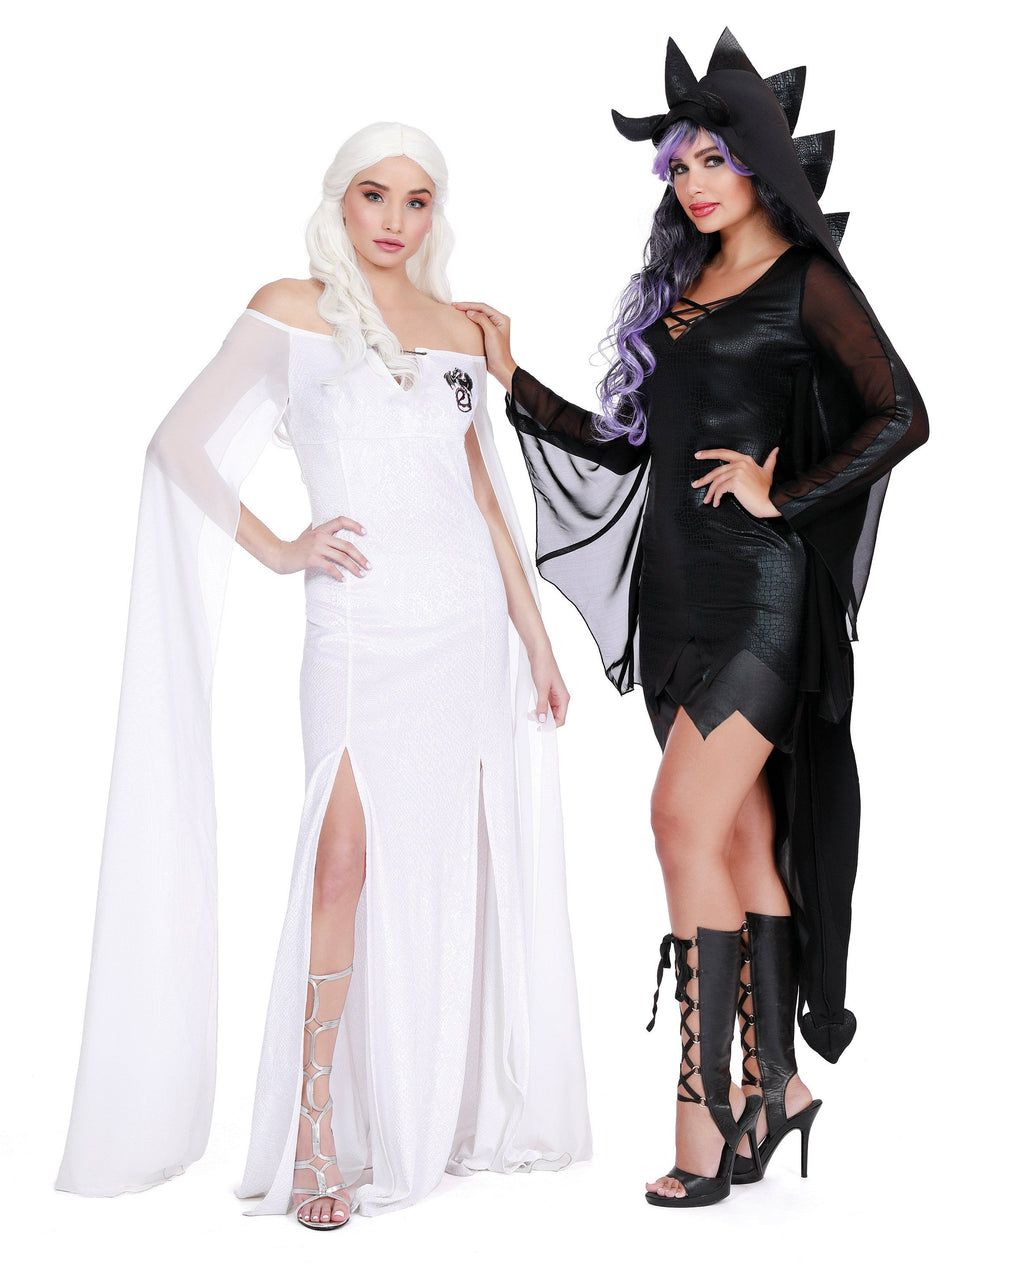 Magic Dragon Women's Costume Dreamgirl Costume